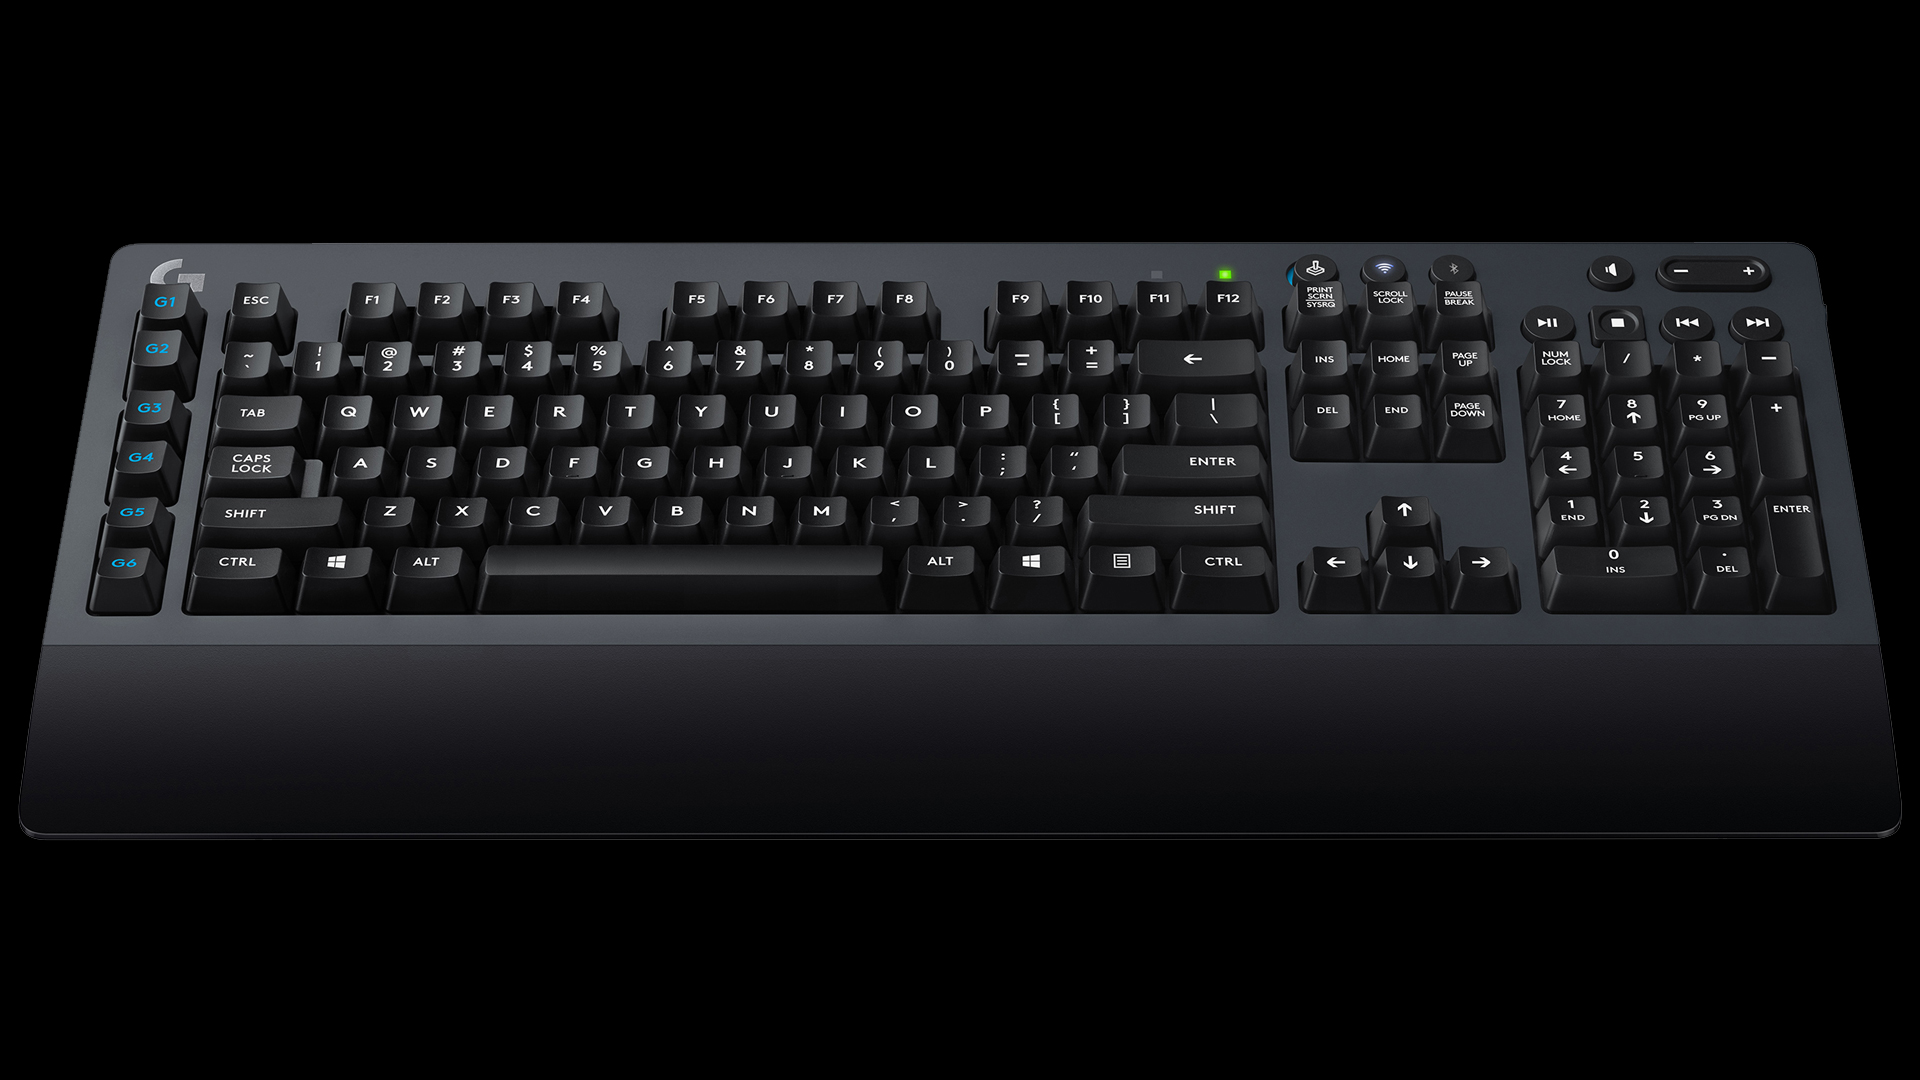 logitech g613 wireless mechanical keyboard gadget reviews popzara press. Black Bedroom Furniture Sets. Home Design Ideas